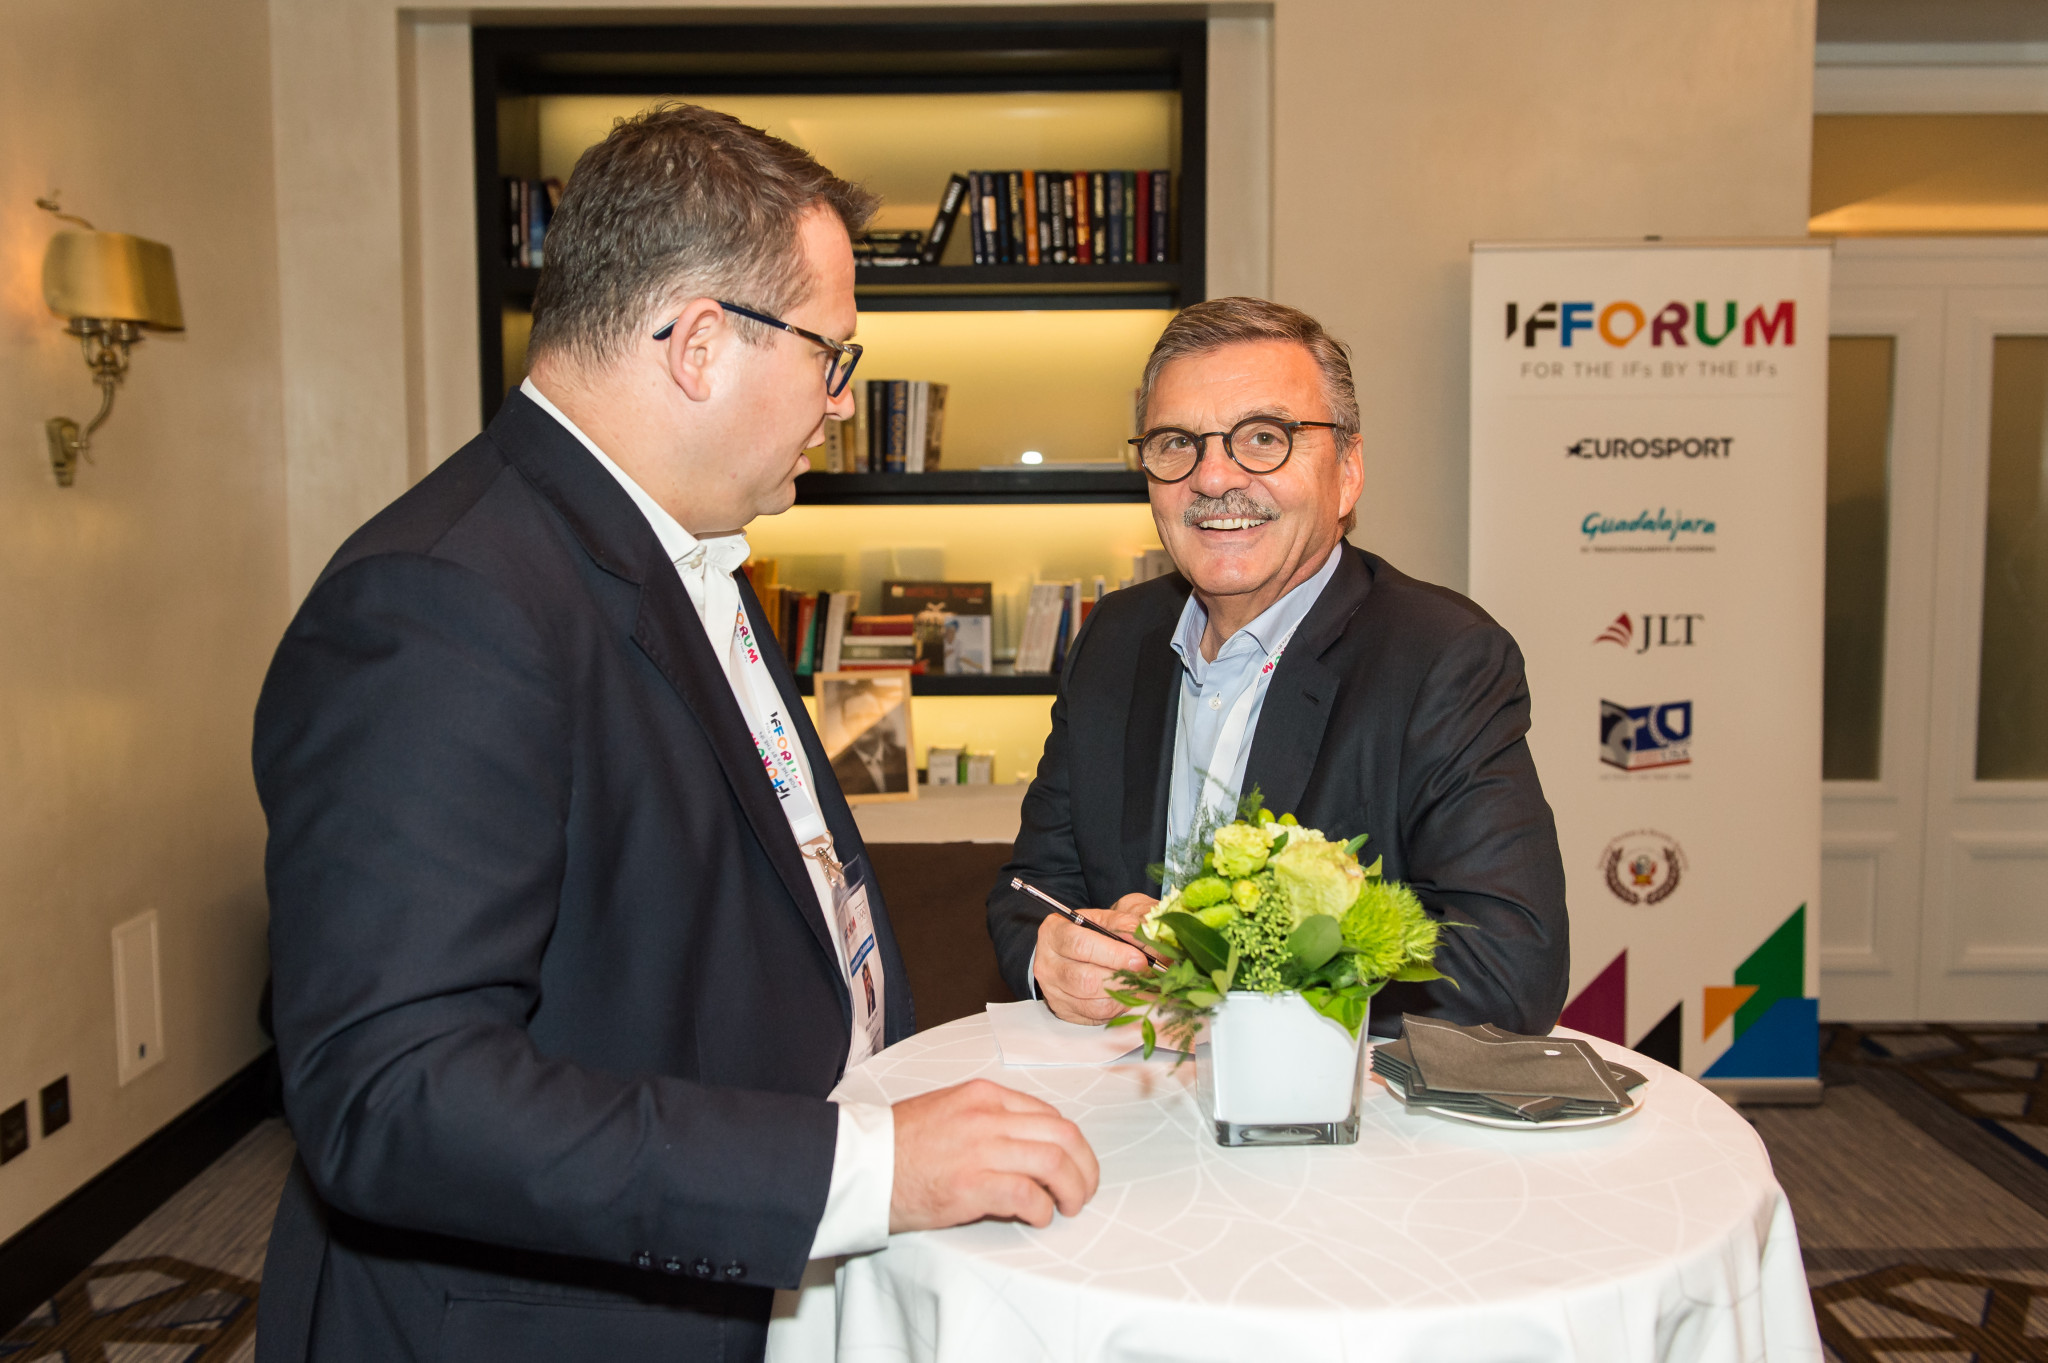 International Ice Hockey Federation President René Fasel, right, was among leading officials to attend the IF Forum ©SportAccord